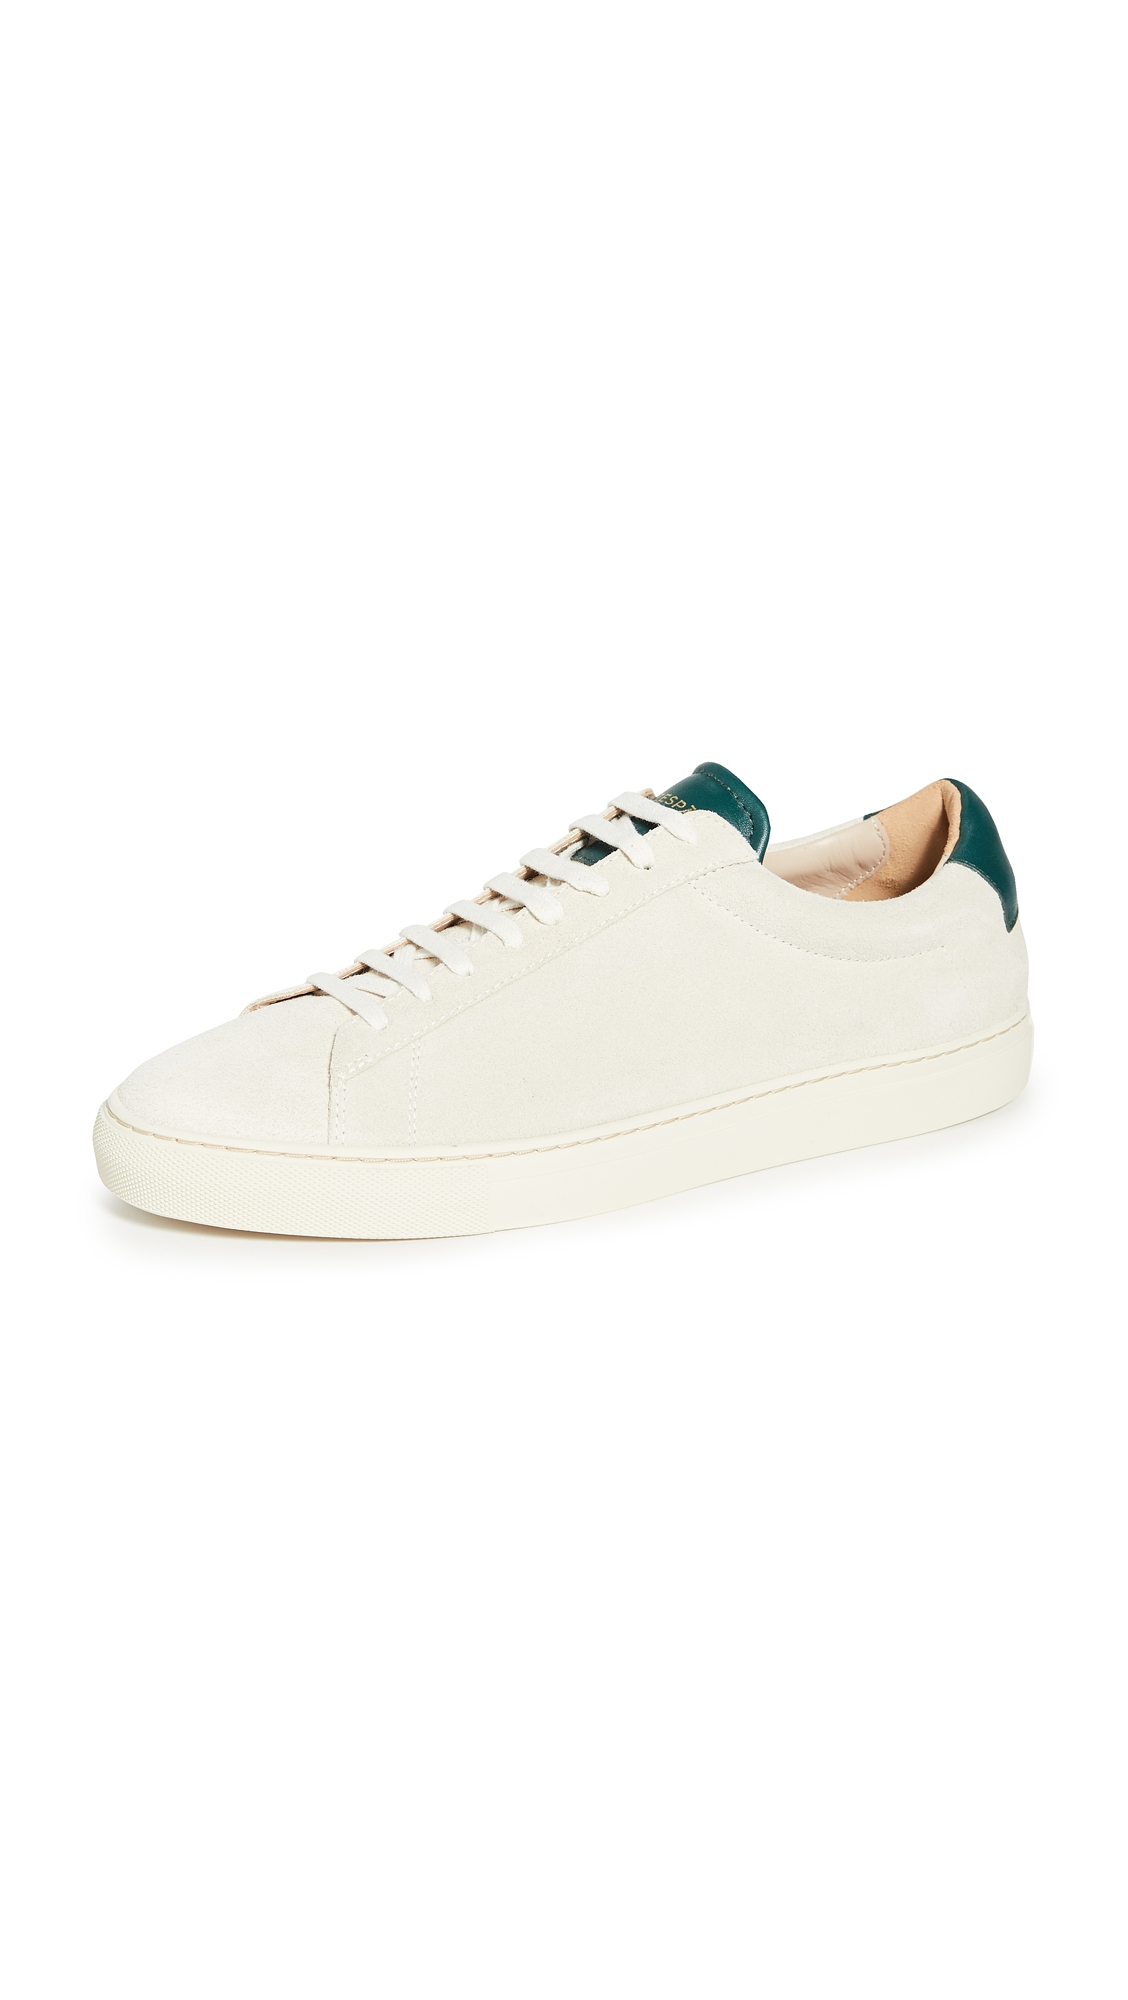 Zespà ZSP4 SUEDE LOW TOP SNEAKERS